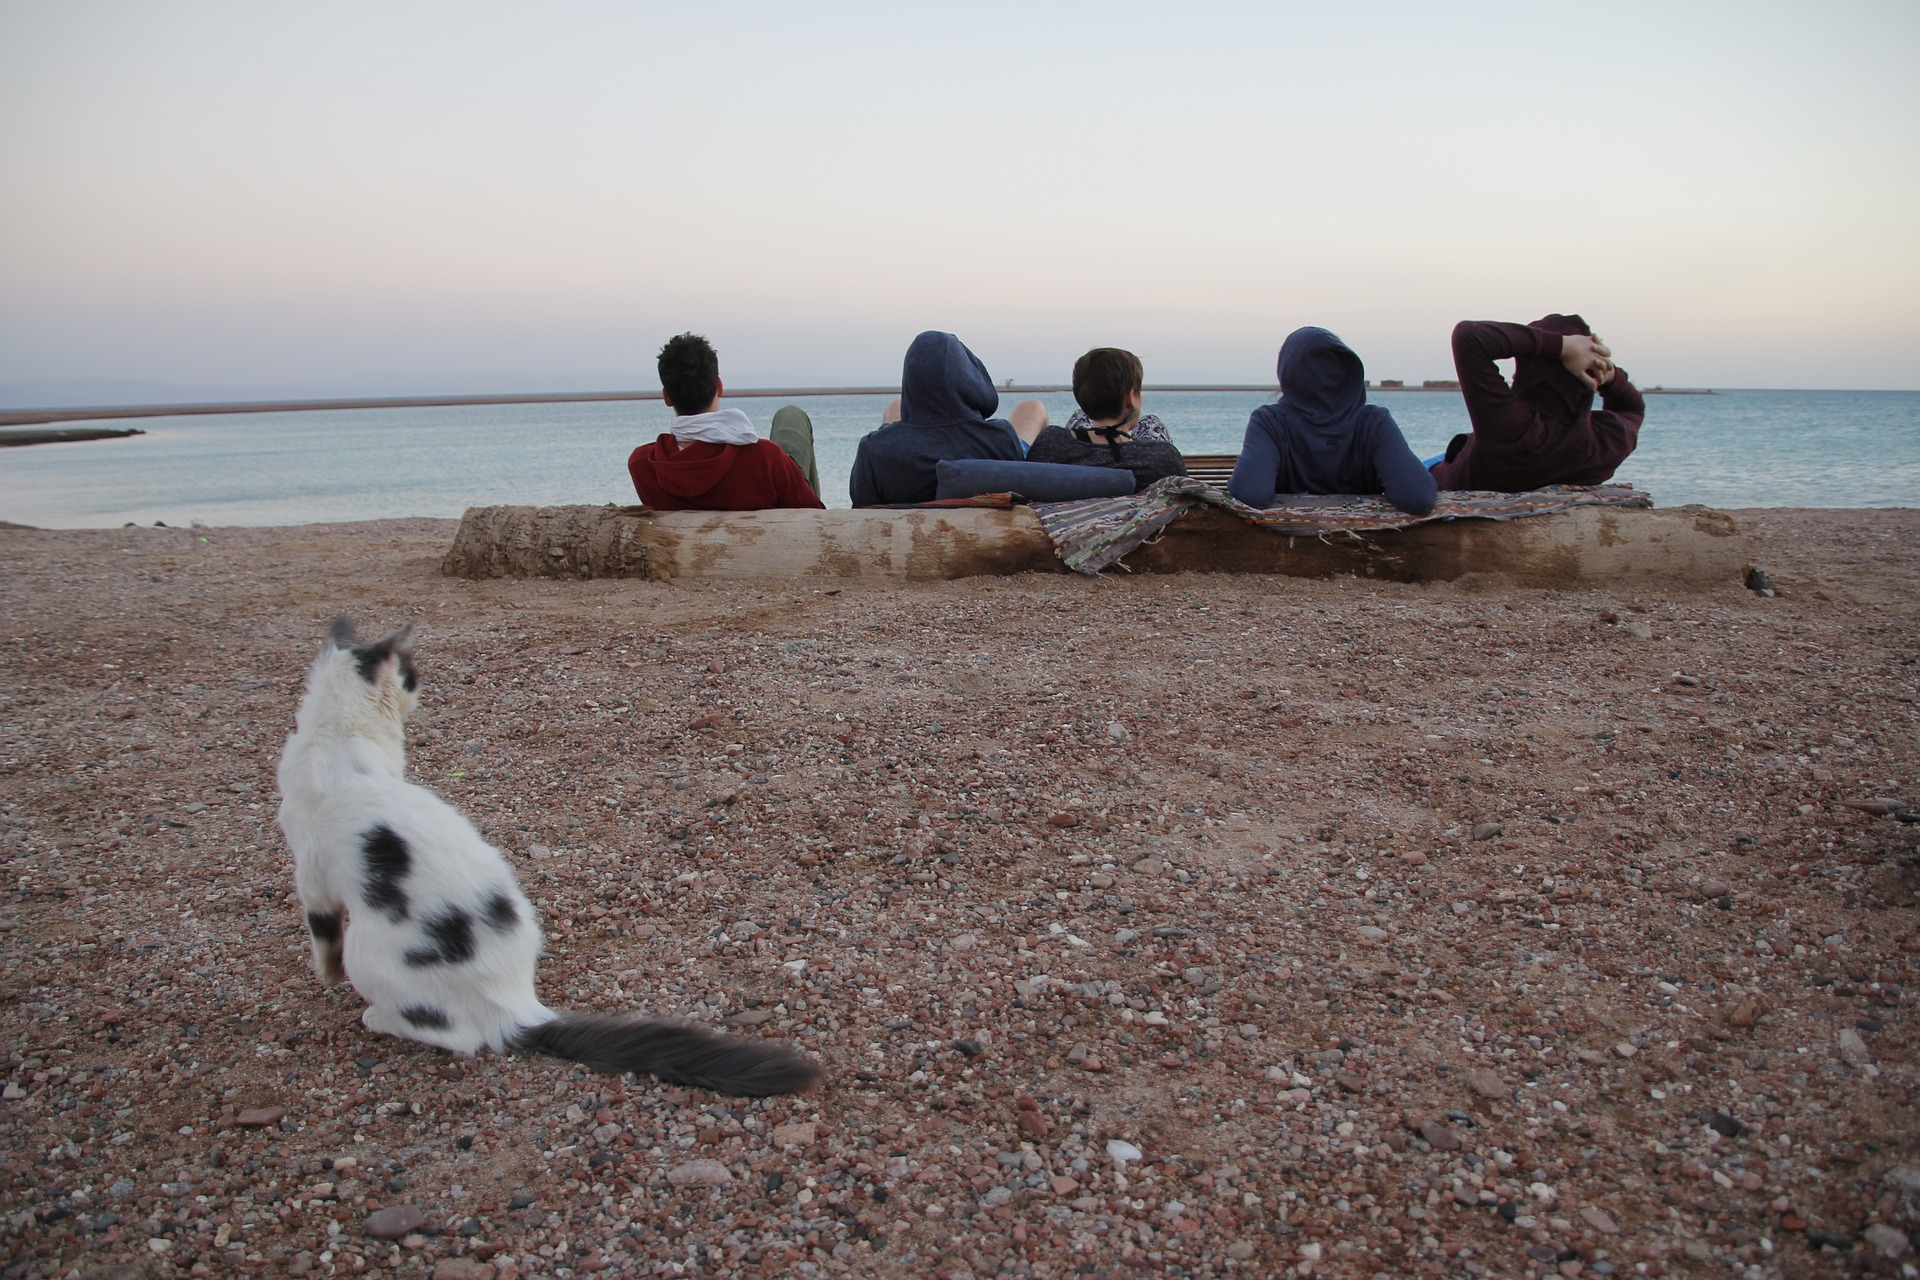 Digital Nomads relaxing on a beach